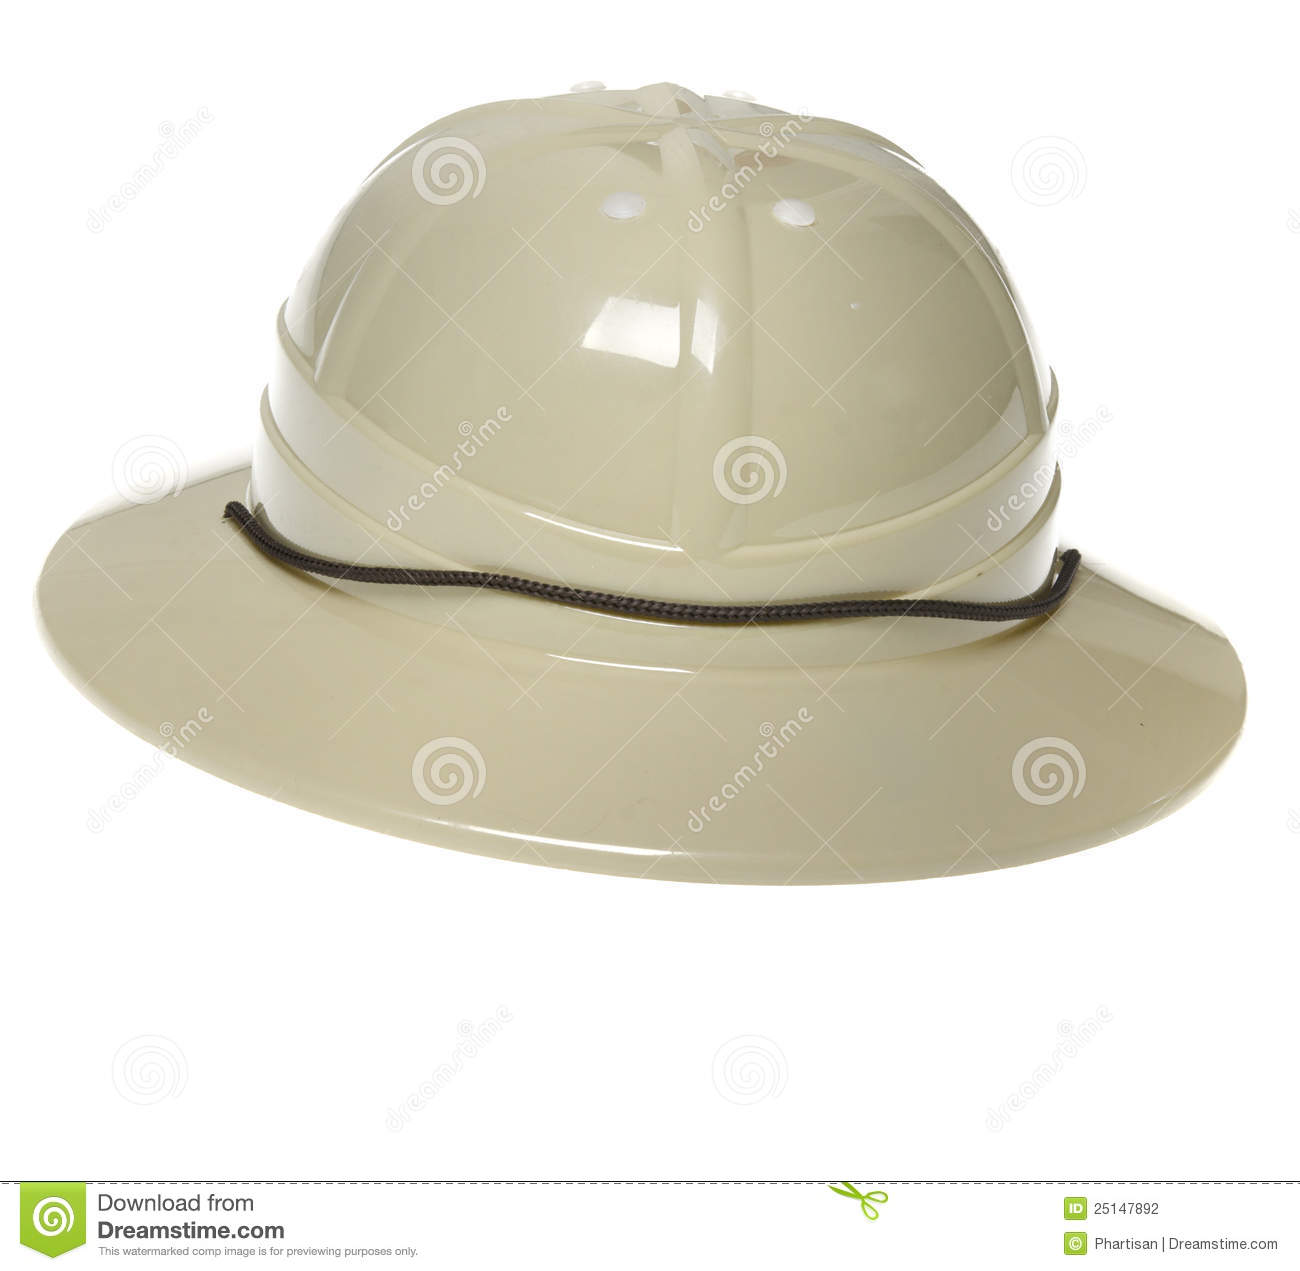 68a822b0c Travel safari hat stock photo. Image of kids, helmet - 25147892